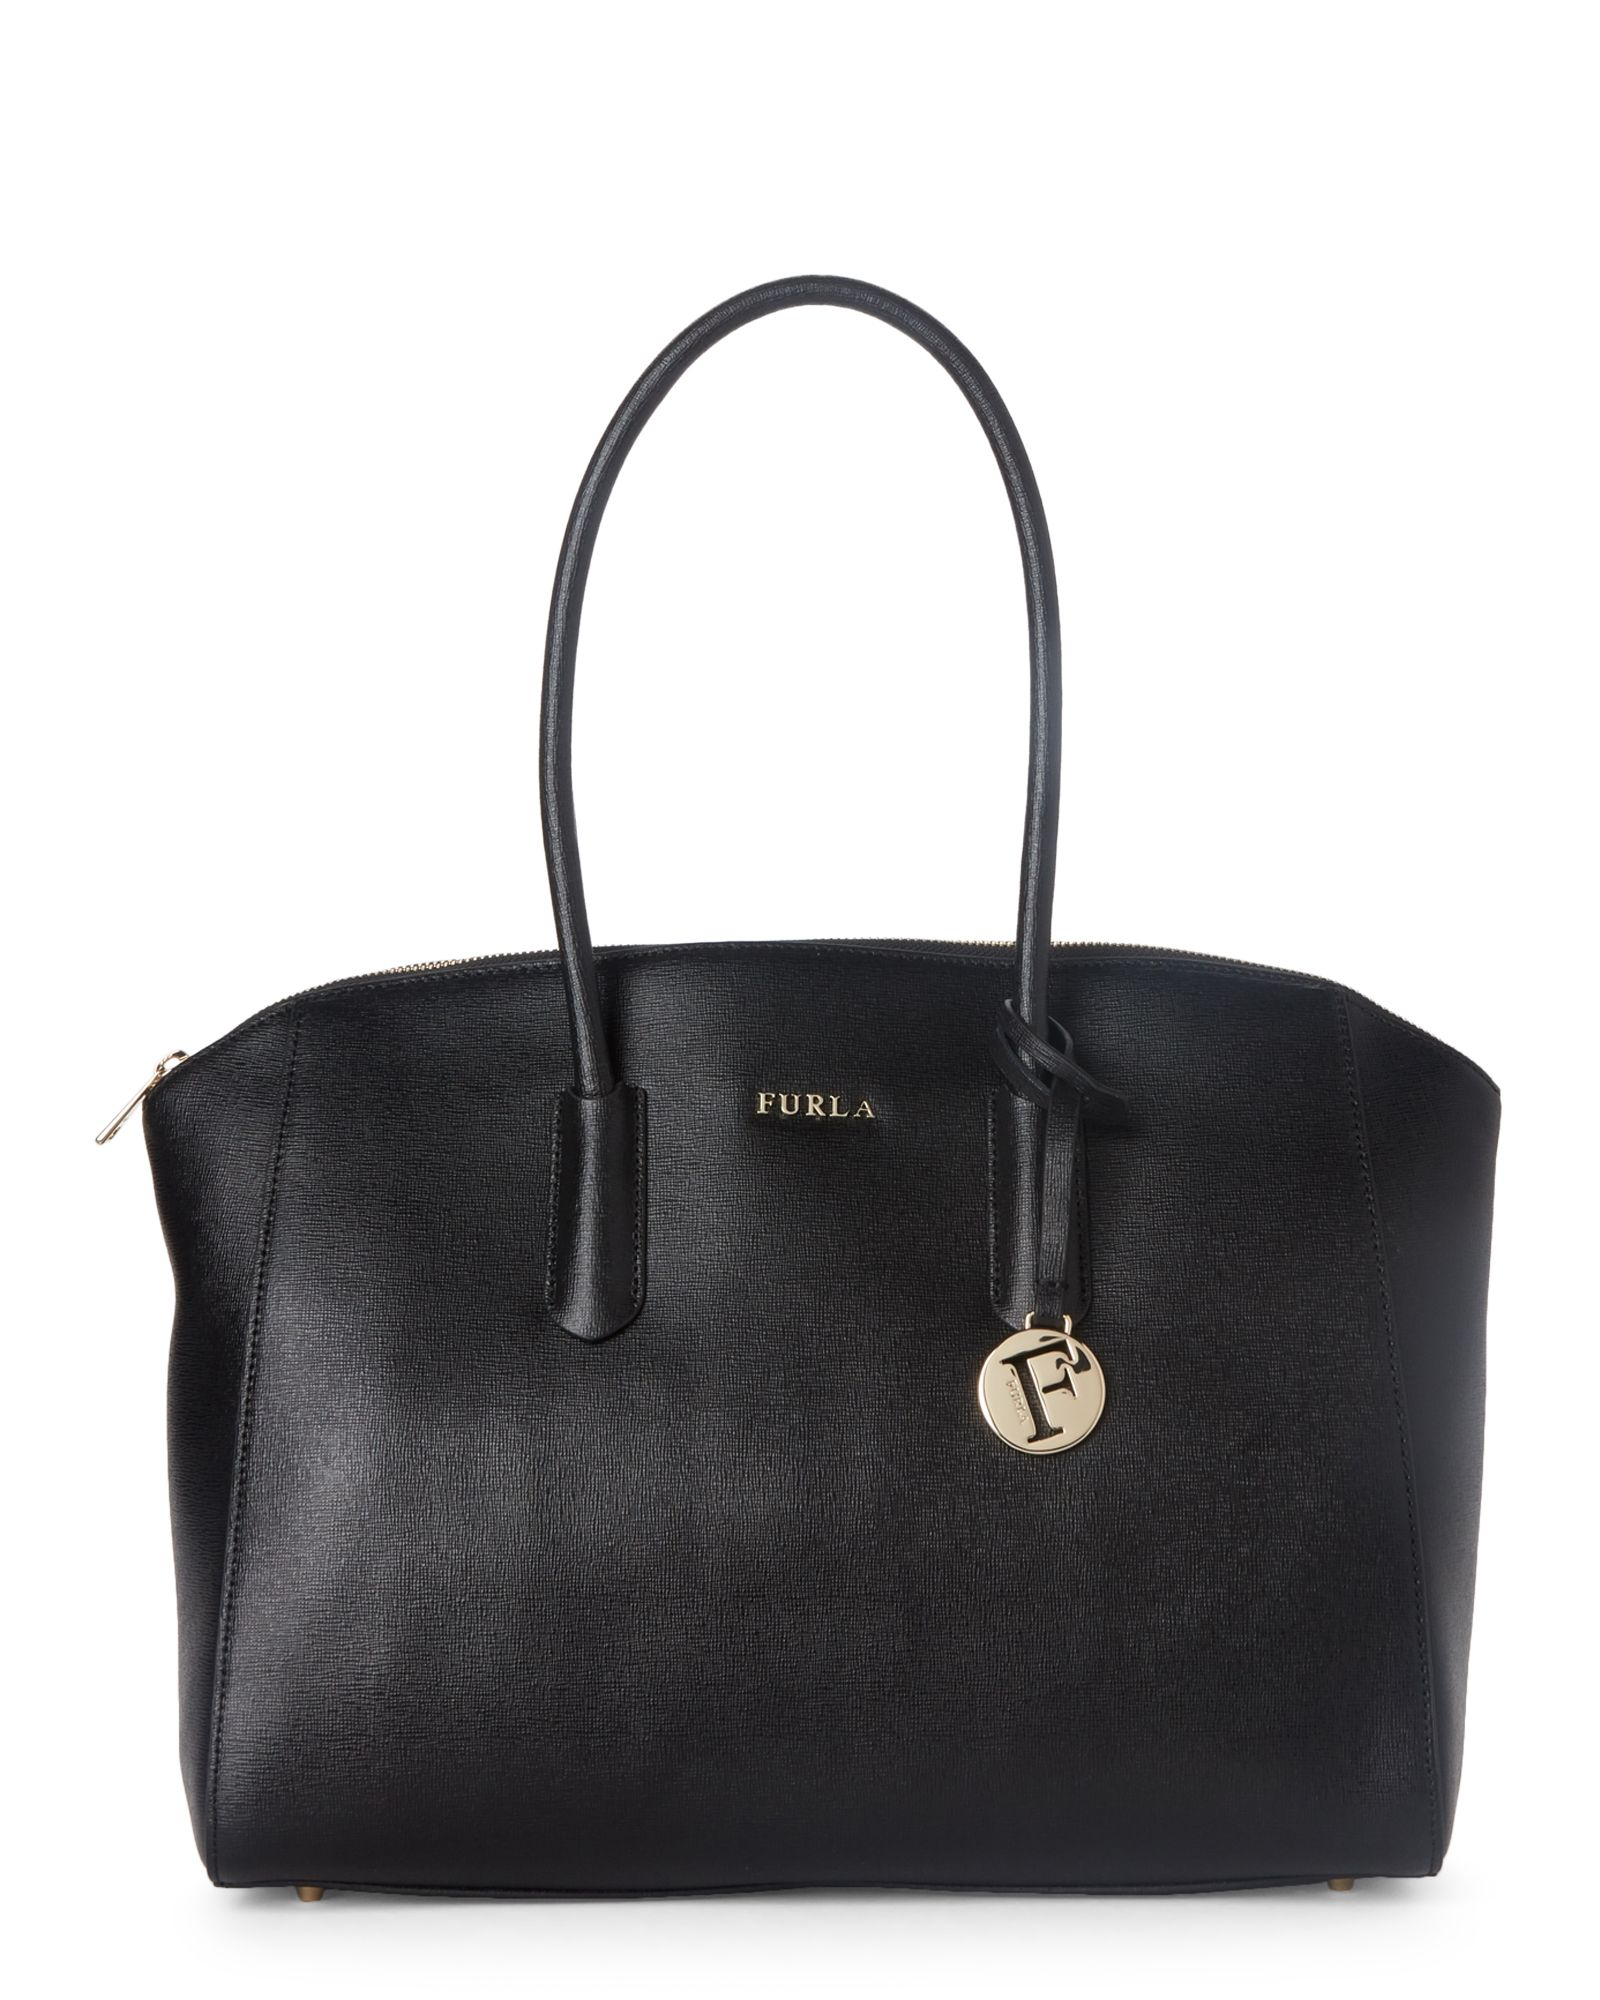 09522169a93c Black Tessa Large Leather Tote in 2019